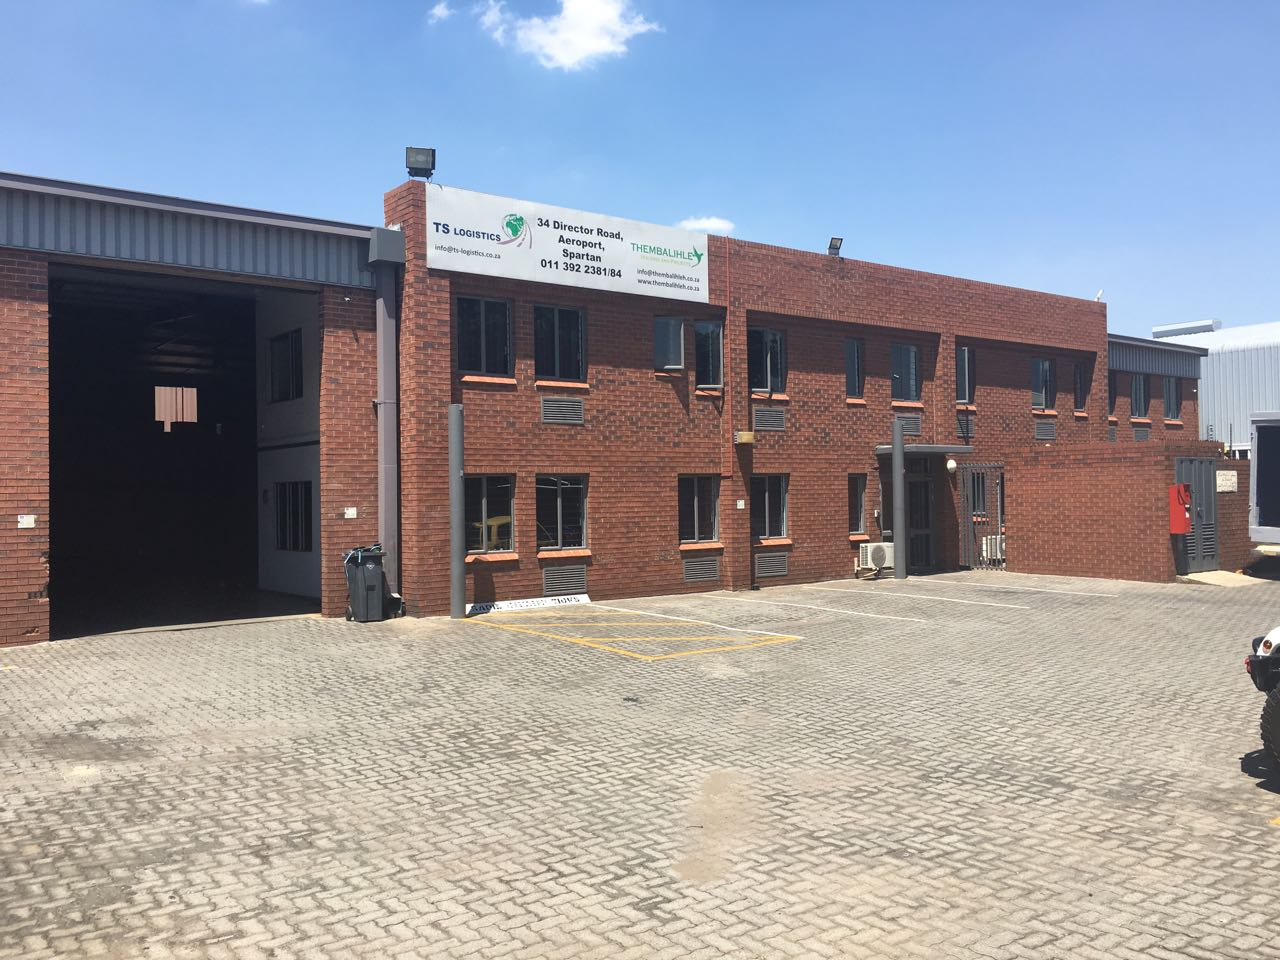 FACTORY / WAREHOUSE TO LET IN AEROPORT!